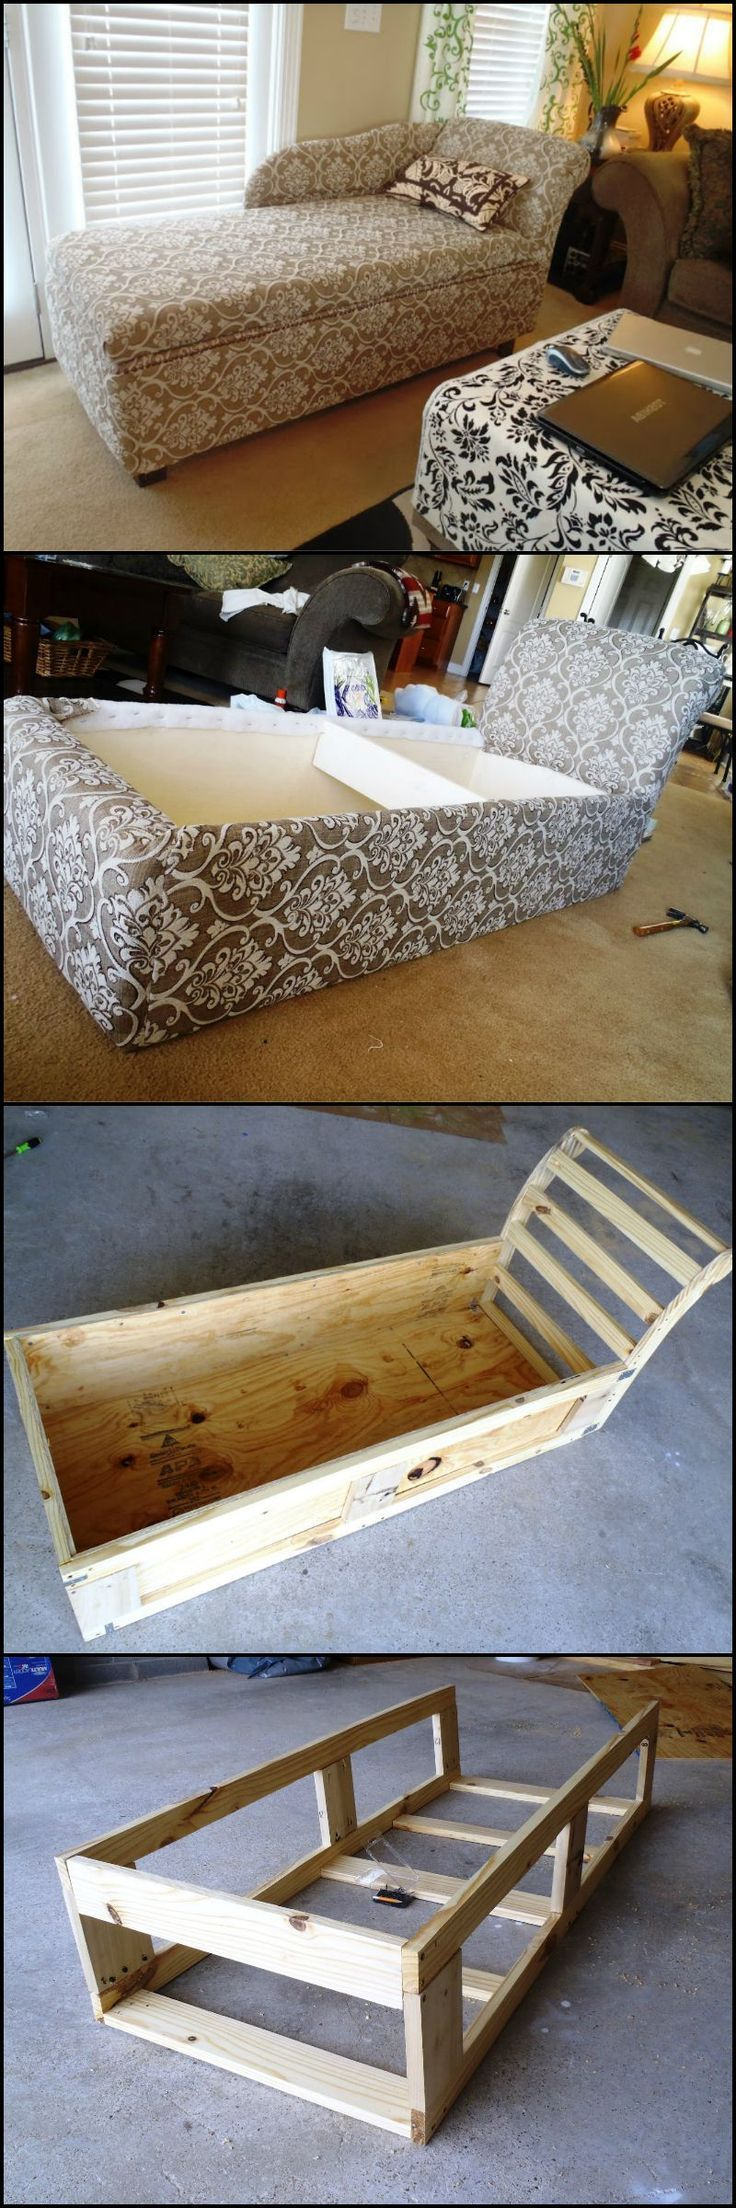 Window seat storage camps pinterest - 35 Super Cool Diy Sofas And Couches